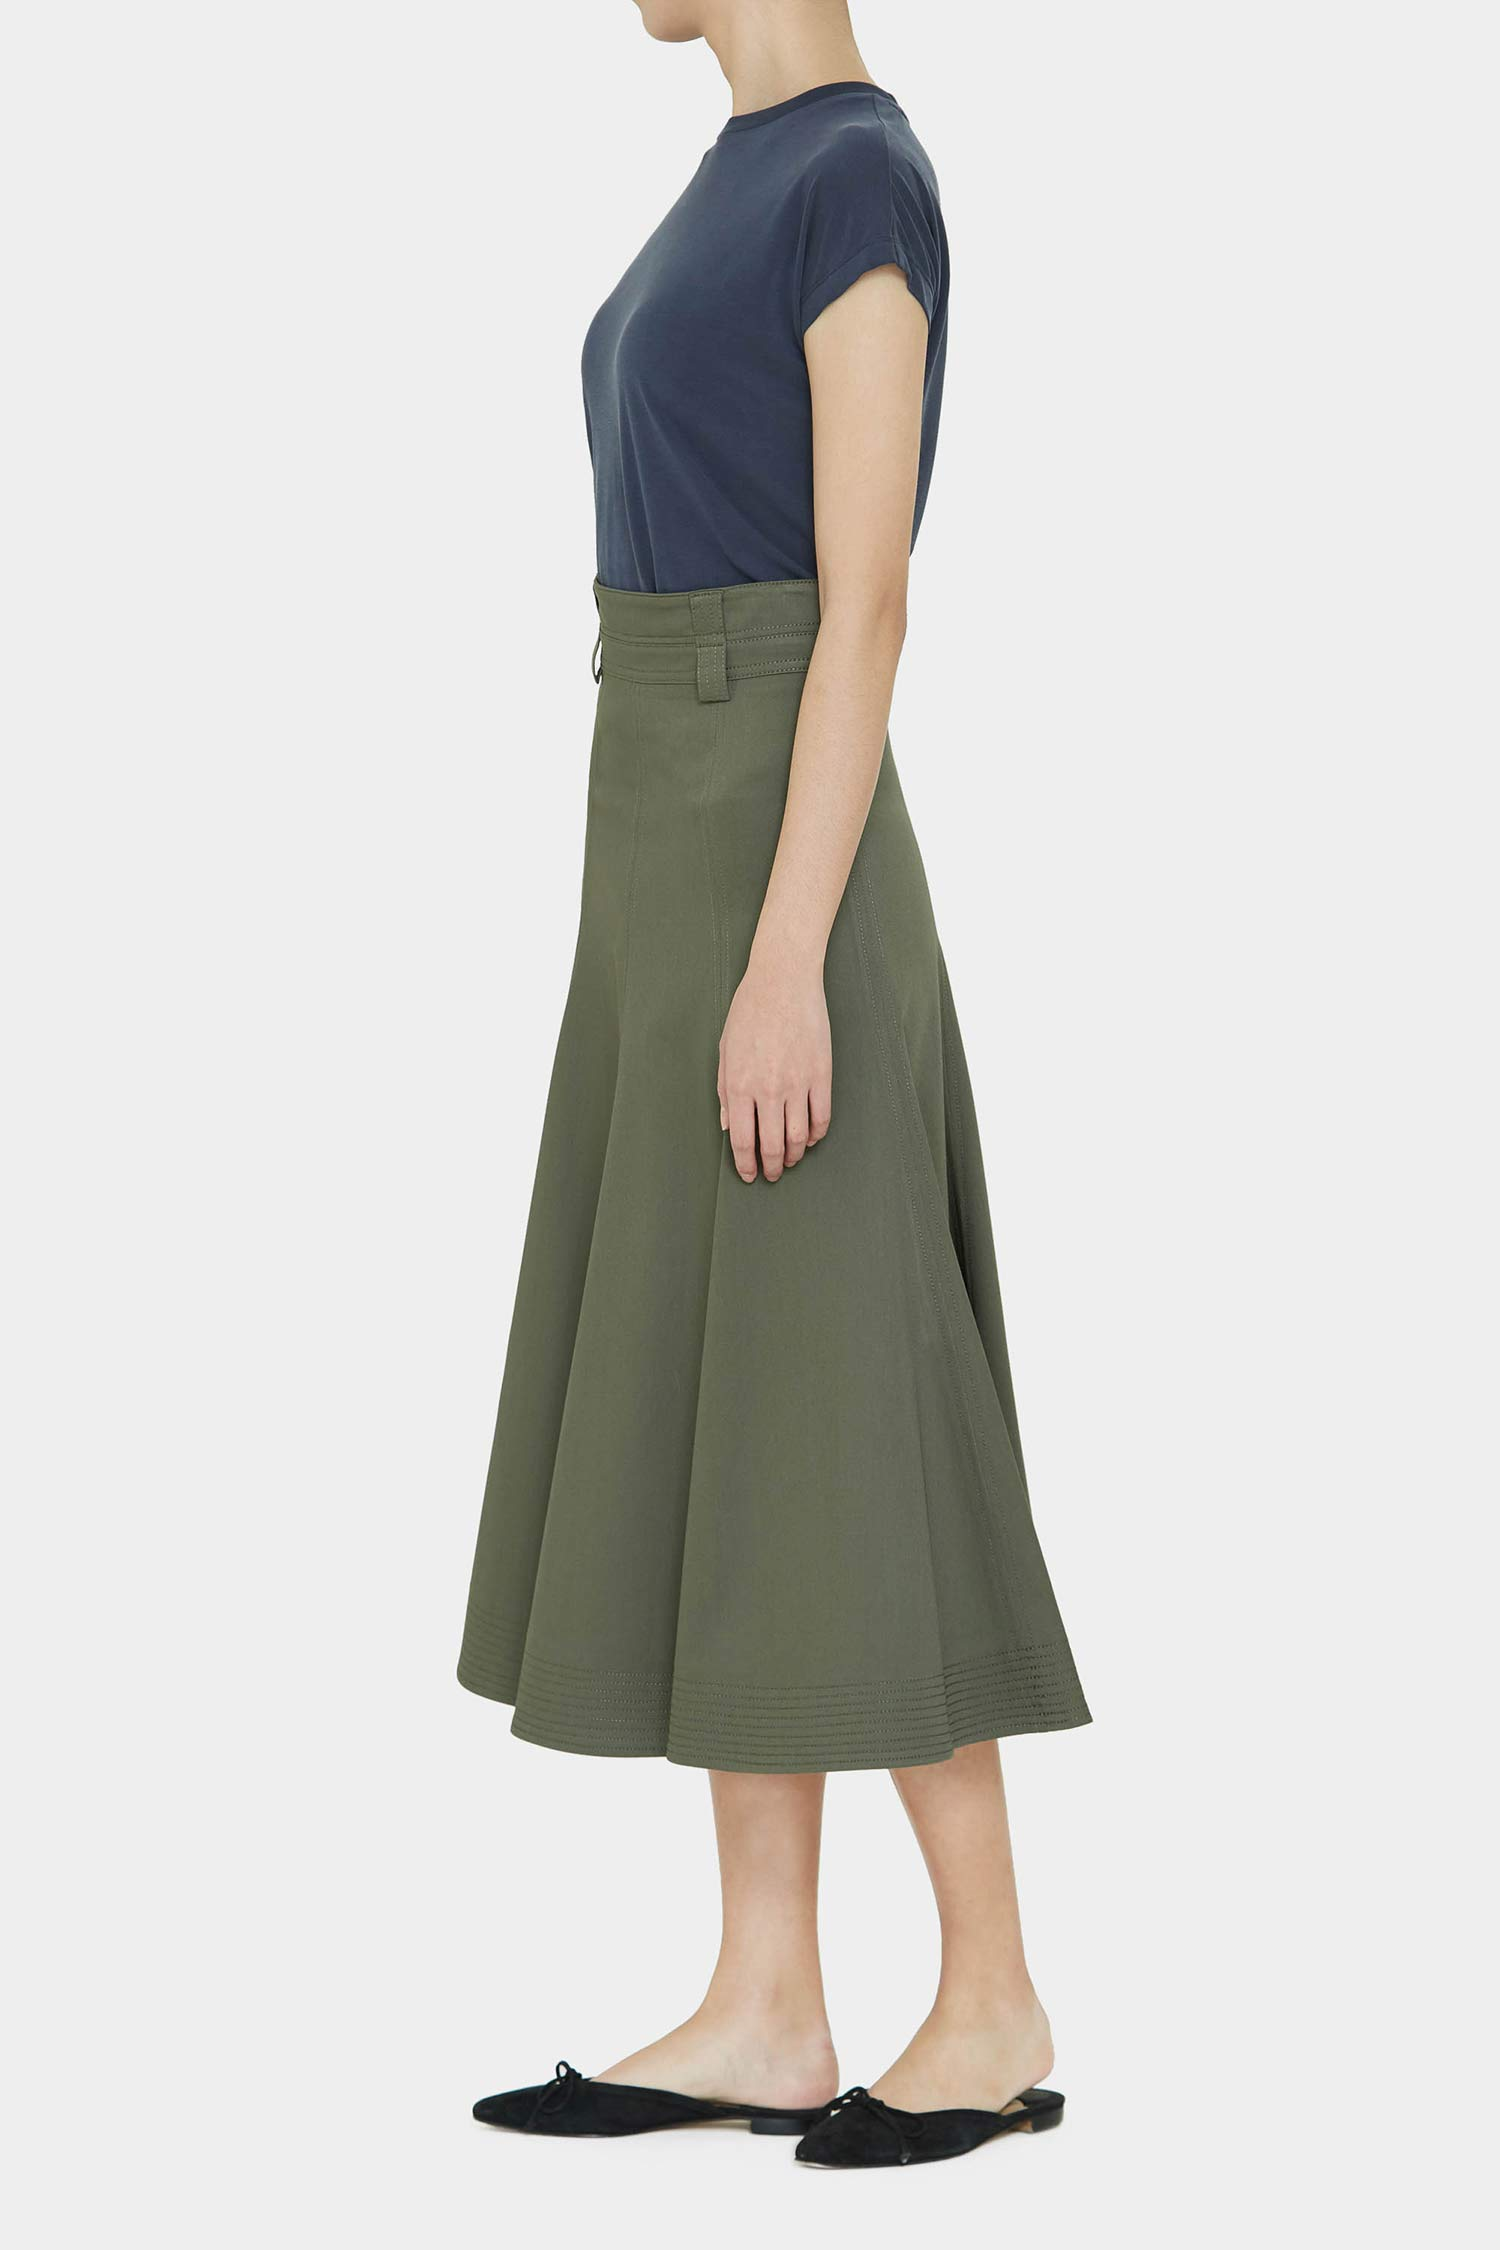 MOSS PAVEL STITCH FLARE SKIRT